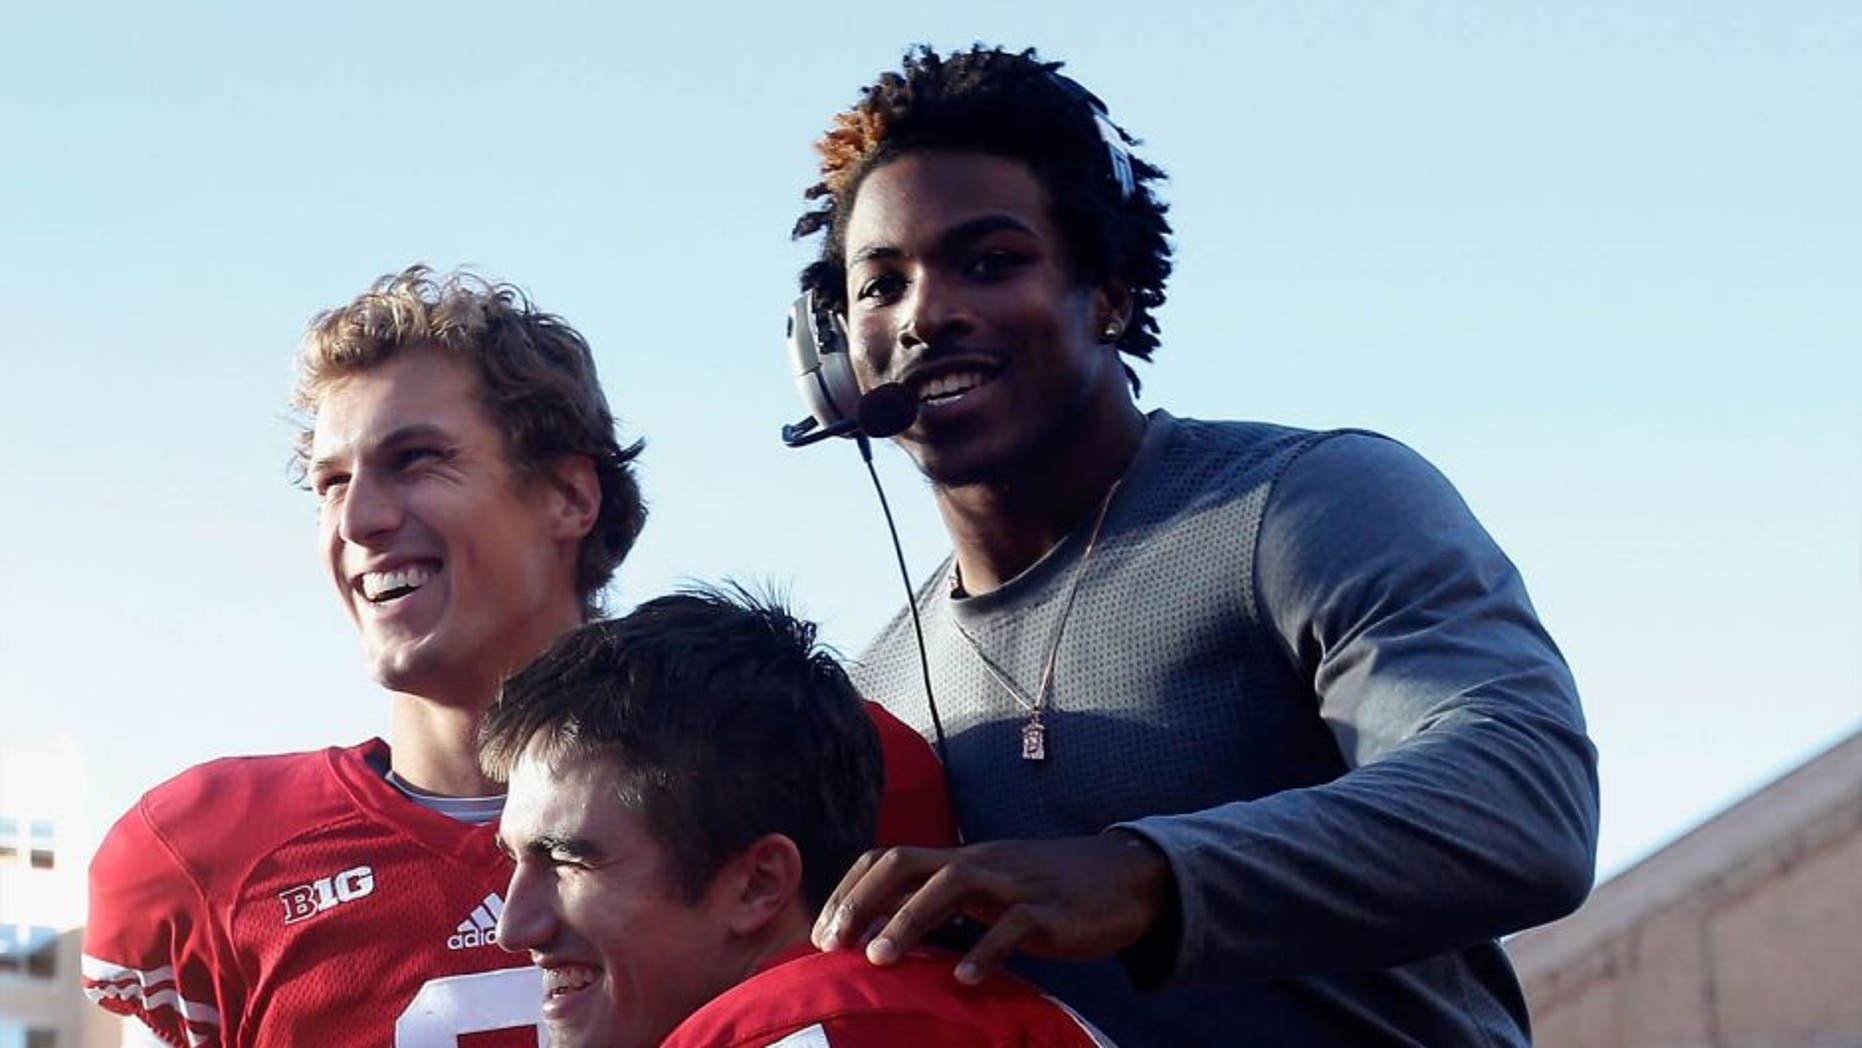 Corey Clement (top right) celebrates with quarterback Joel Stave (left) and Andrew Endicott during the final moments of a 28-3 win against the Troy Trojans at Camp Randall Stadium on September 19, 2015, in Madison, Wisconsin.